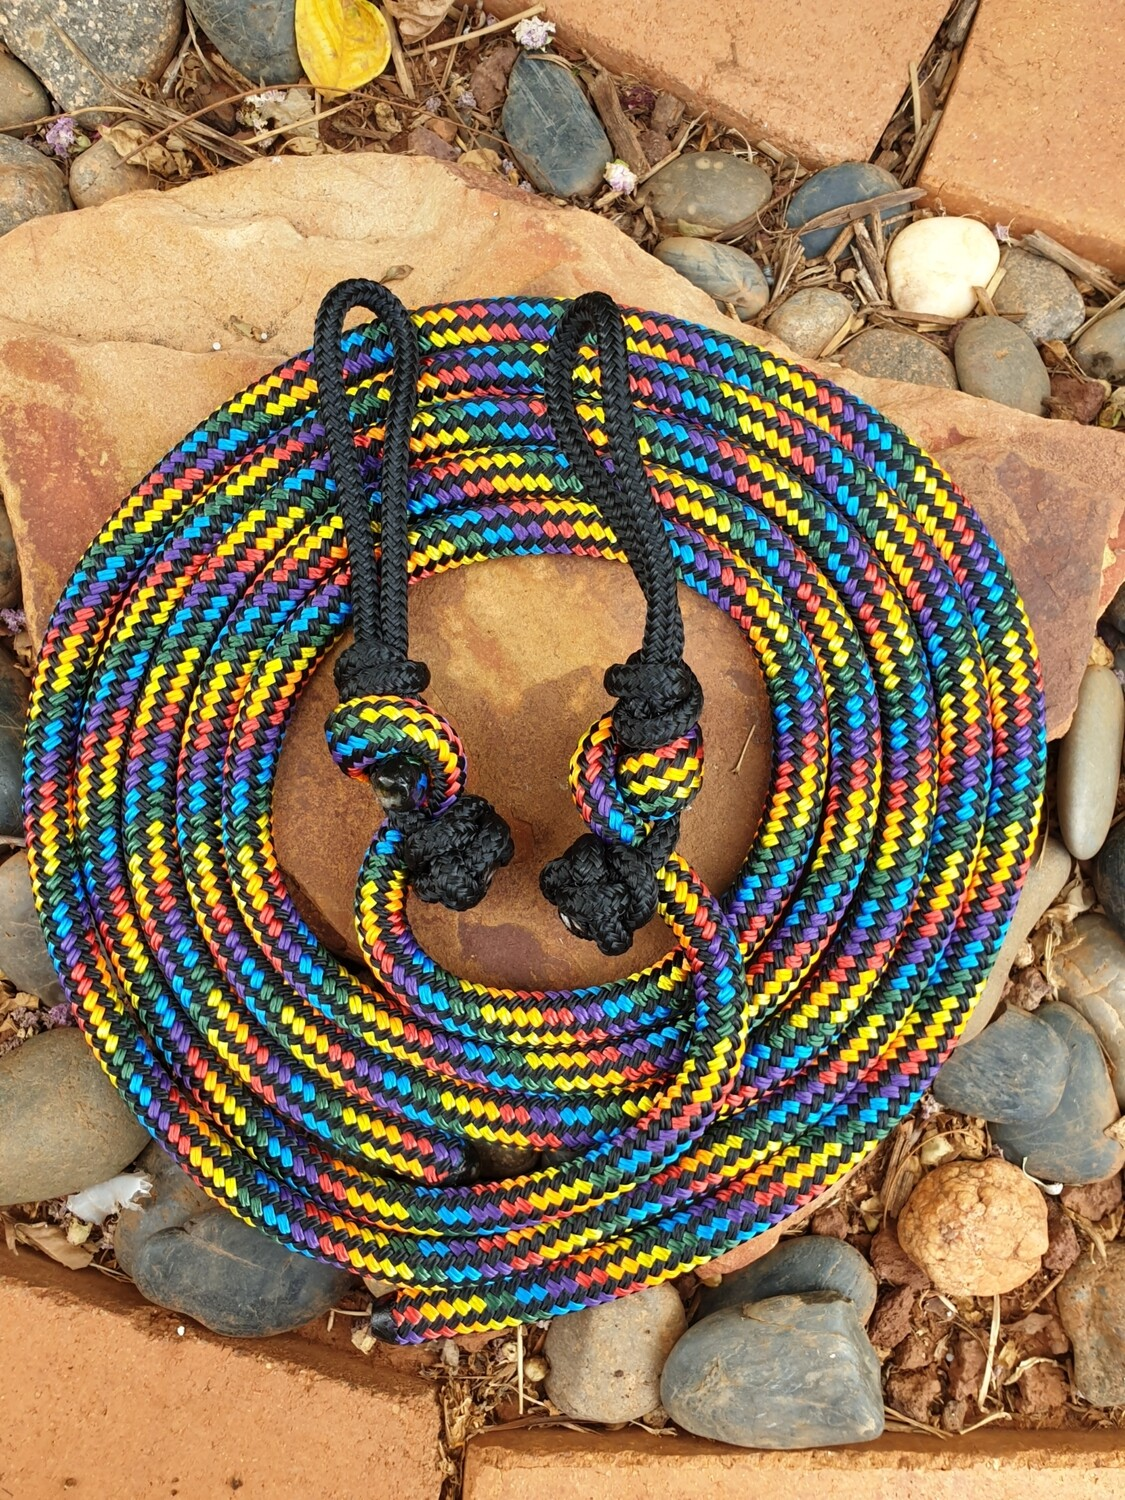 Black Rainbow Rope Reins with Bit Connector